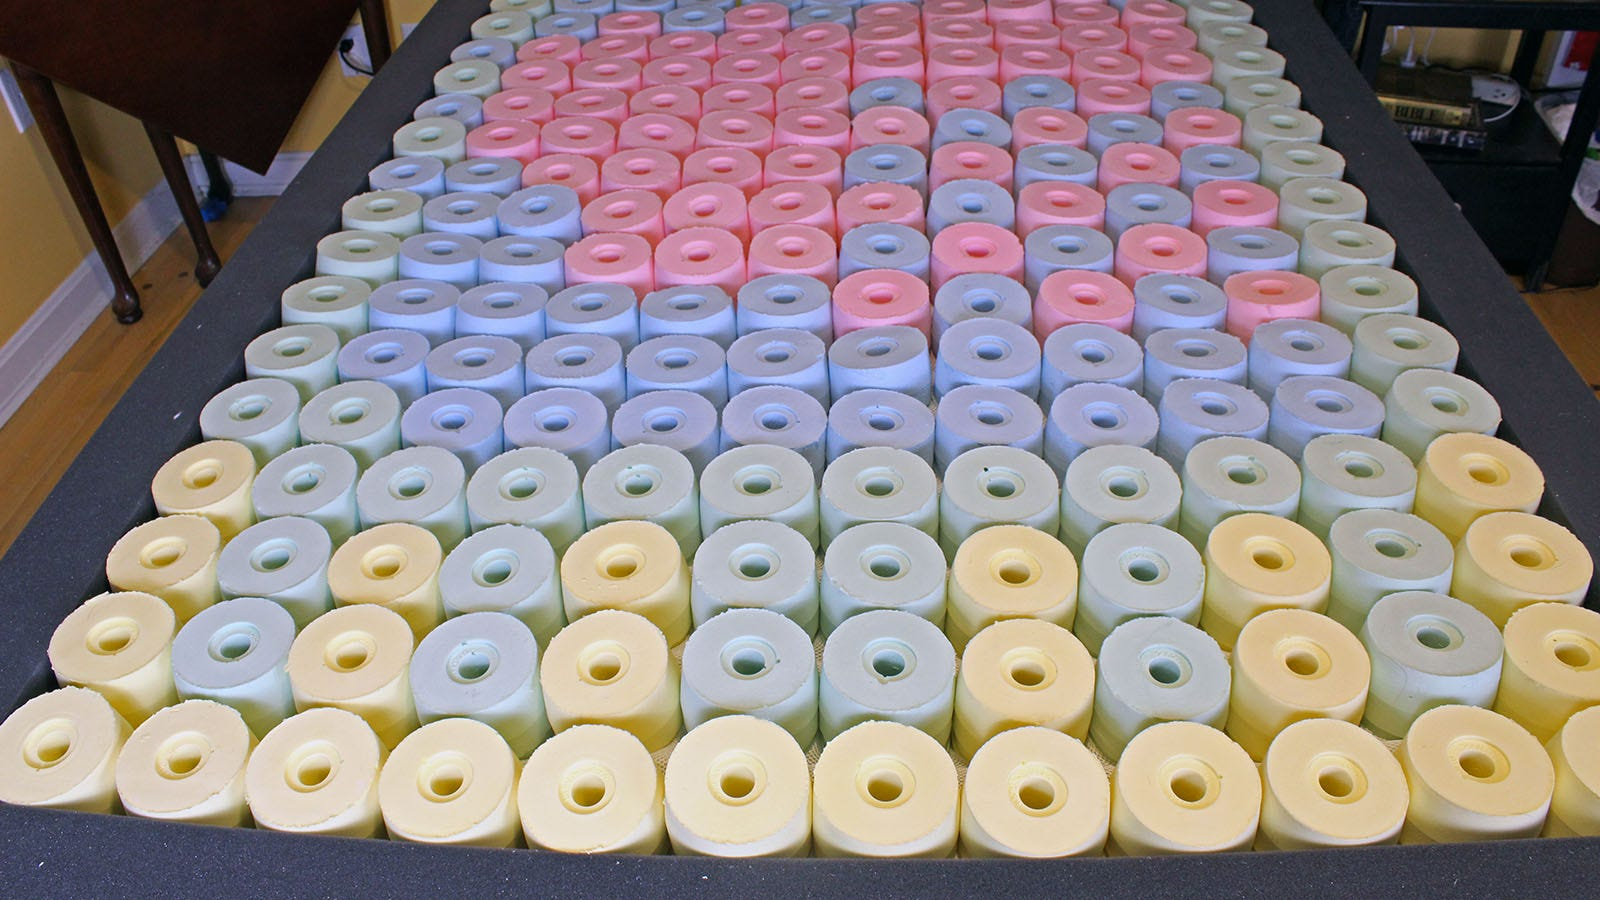 A bed full of multi-colored foam springs surrounded by a dark black border.